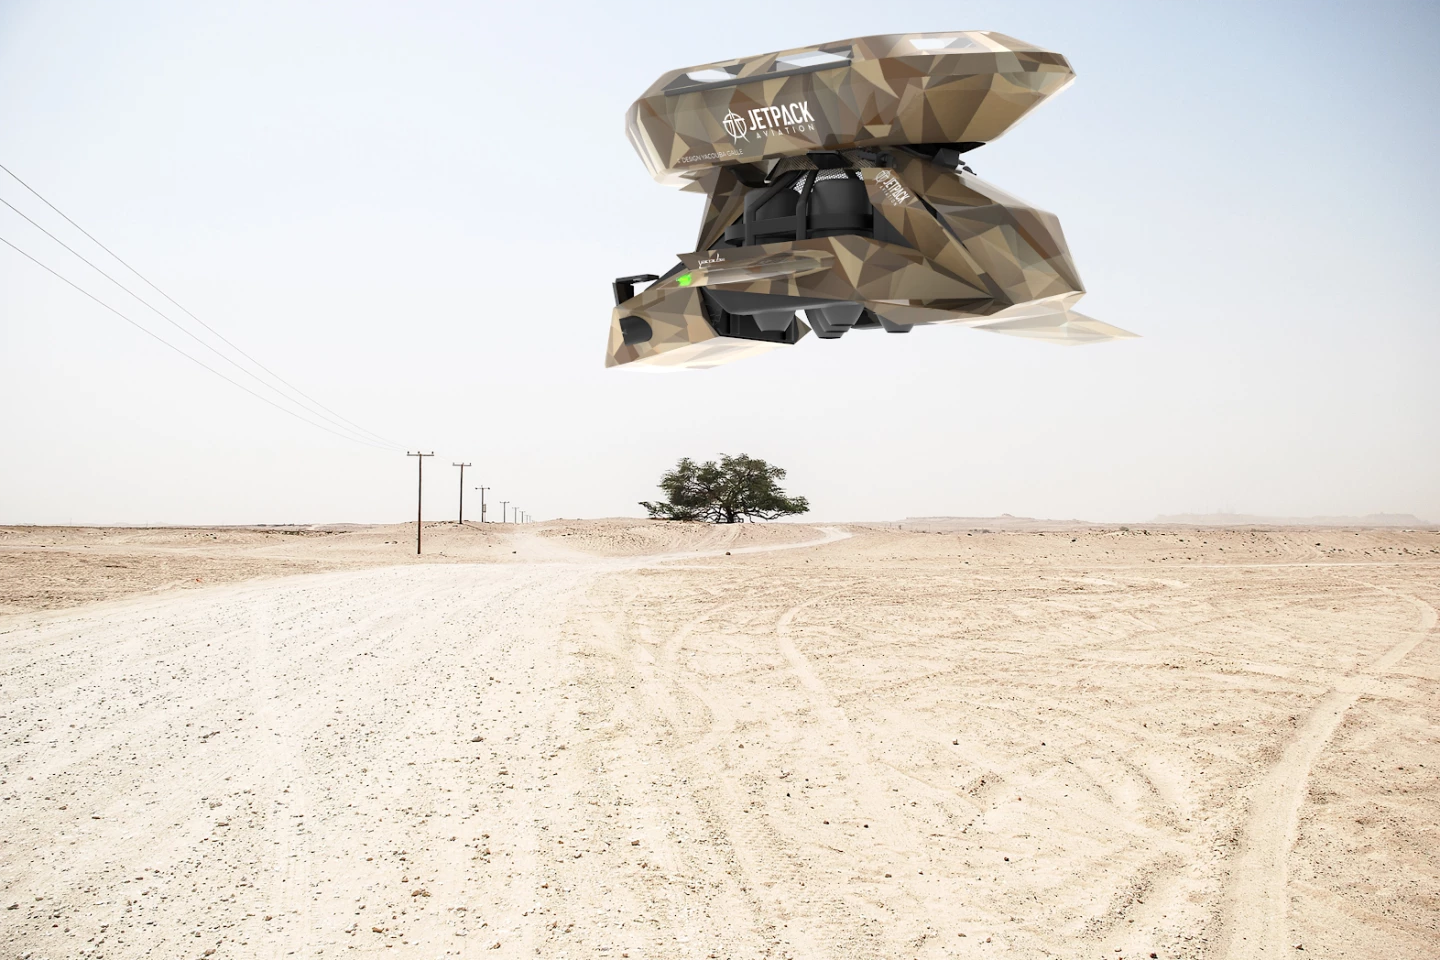 Attachable litters could make the Speeder a genuine asset for medevac missionsJetpack Aviation